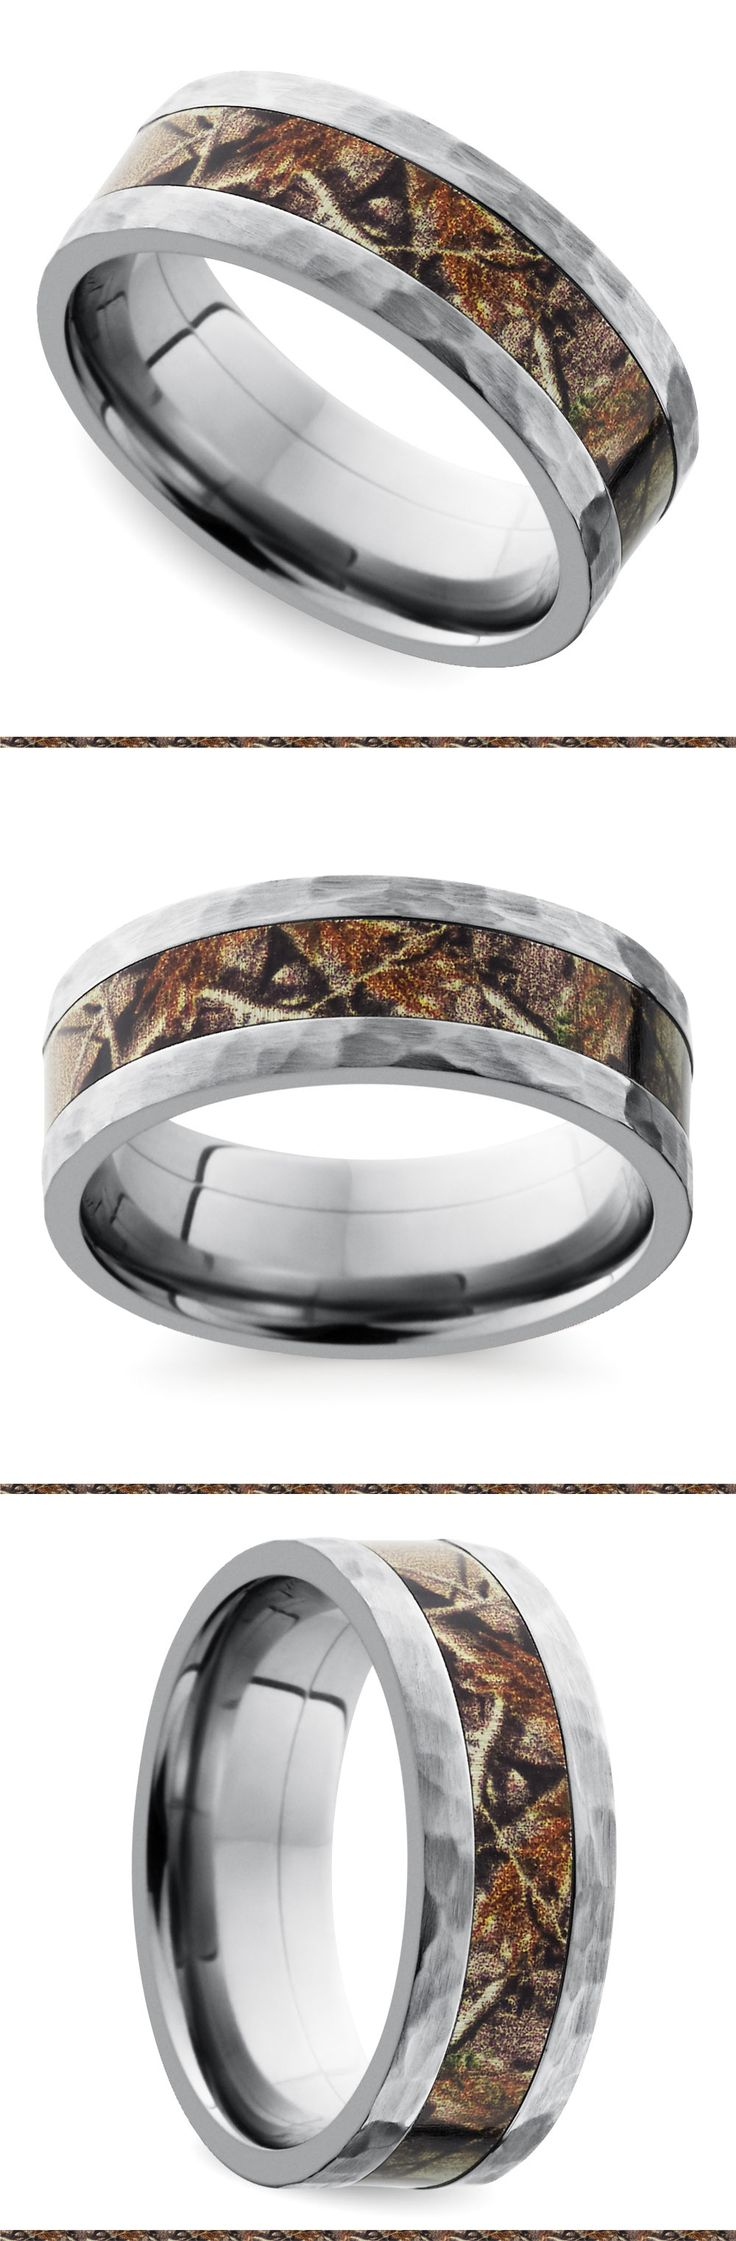 Hammered Flat Camouflage Inlay Men's Wedding Ring In